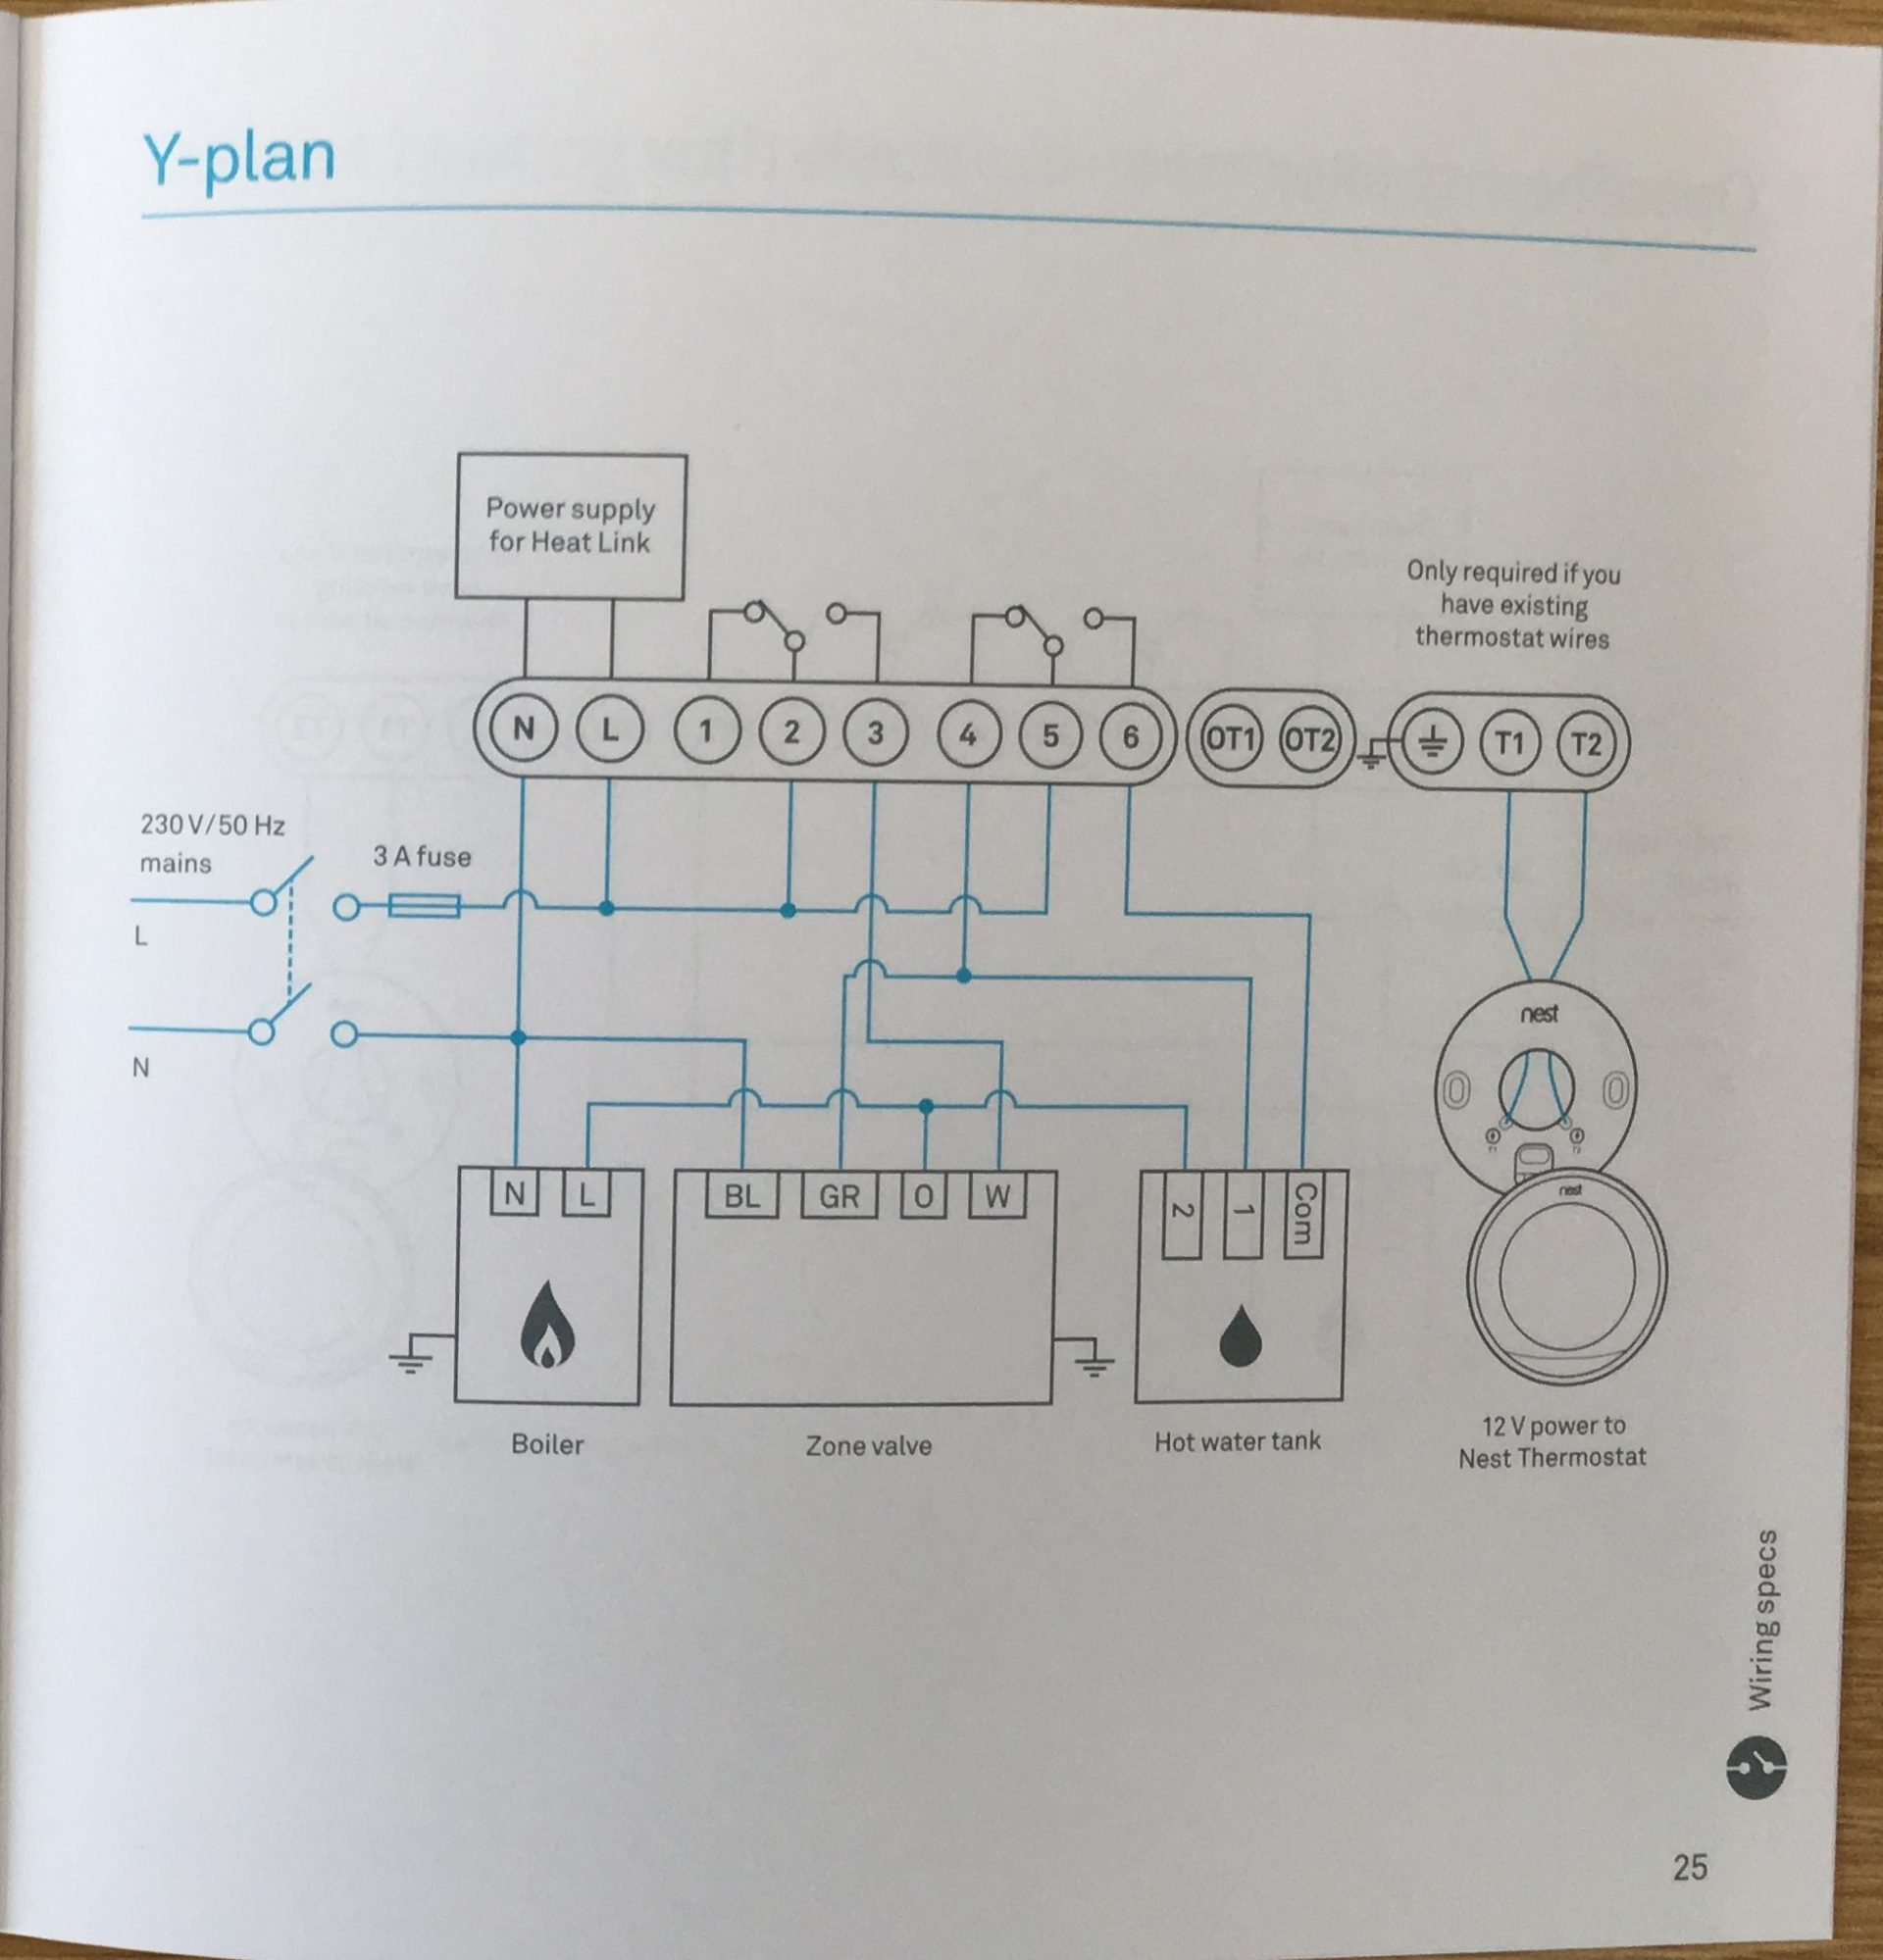 How To Install The Nest Learning Thermostat (3Rd Gen) In A Y-Plan - New Nest Thermostat Wiring Diagram